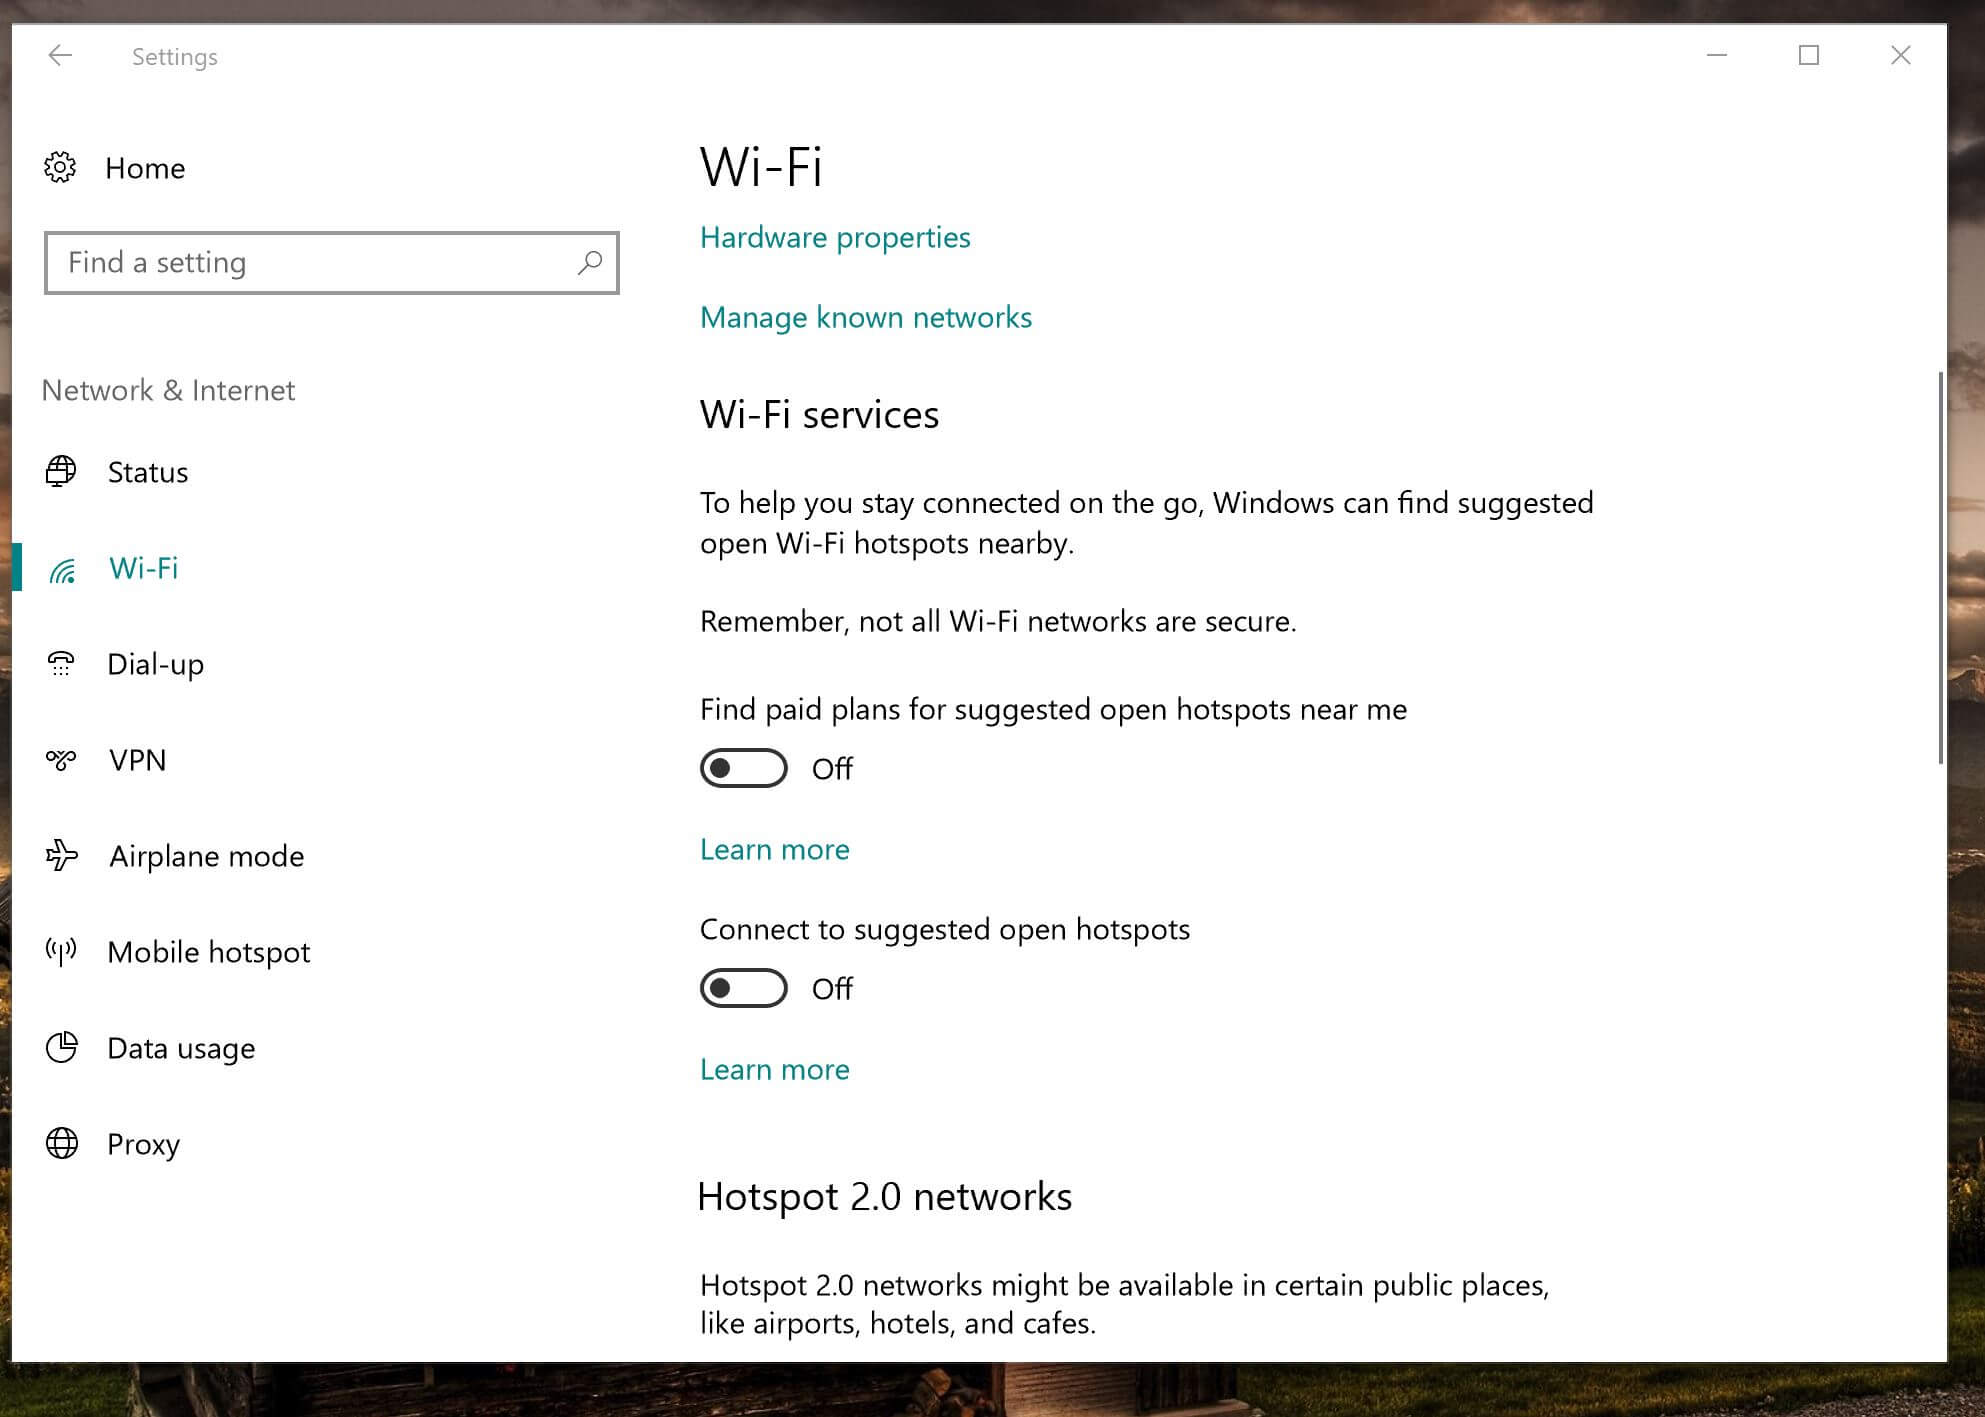 The Wi-Fi settings in Windows 10